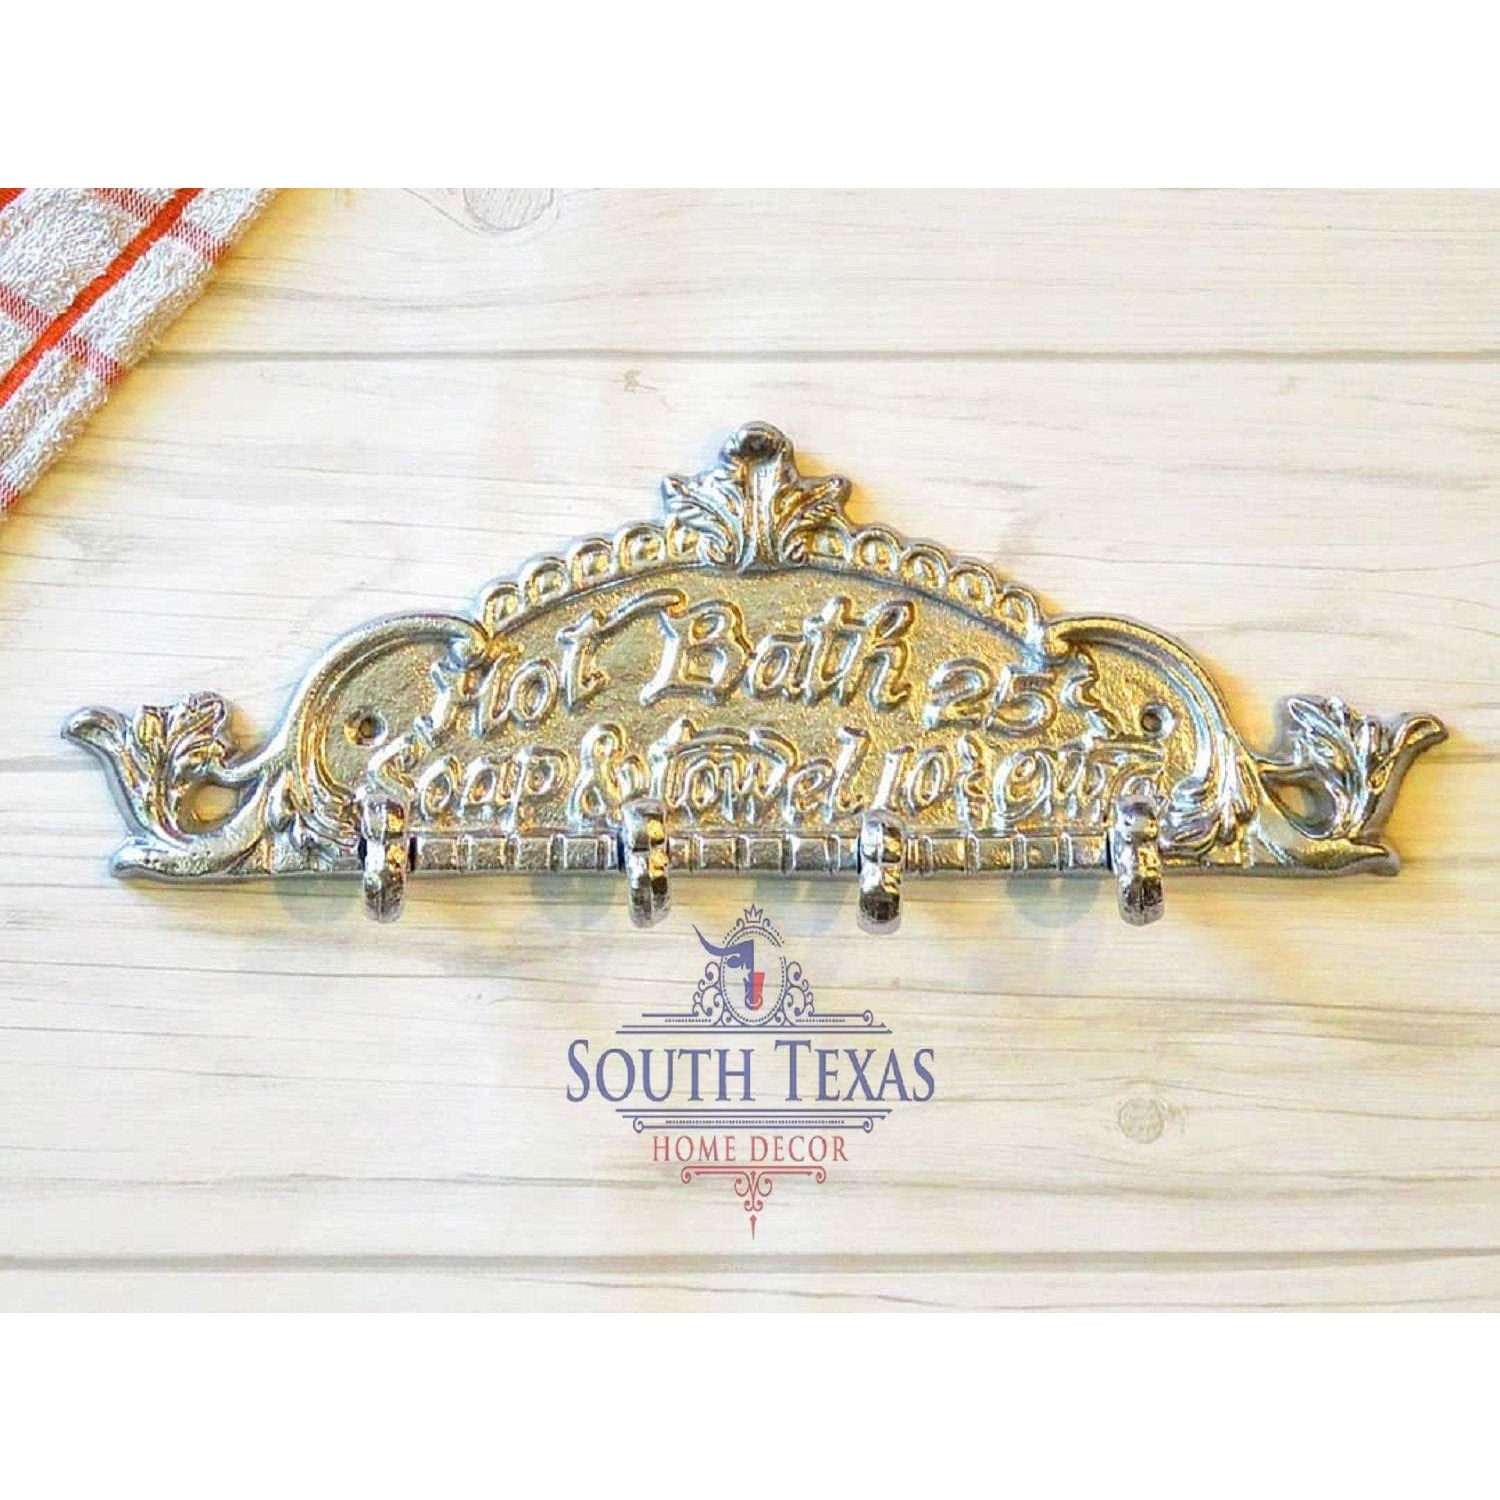 South Texas Home Decor Rustic Bathroom Wall Decor Farmhouse Bathroom Sign Rustic Bathroom Signs